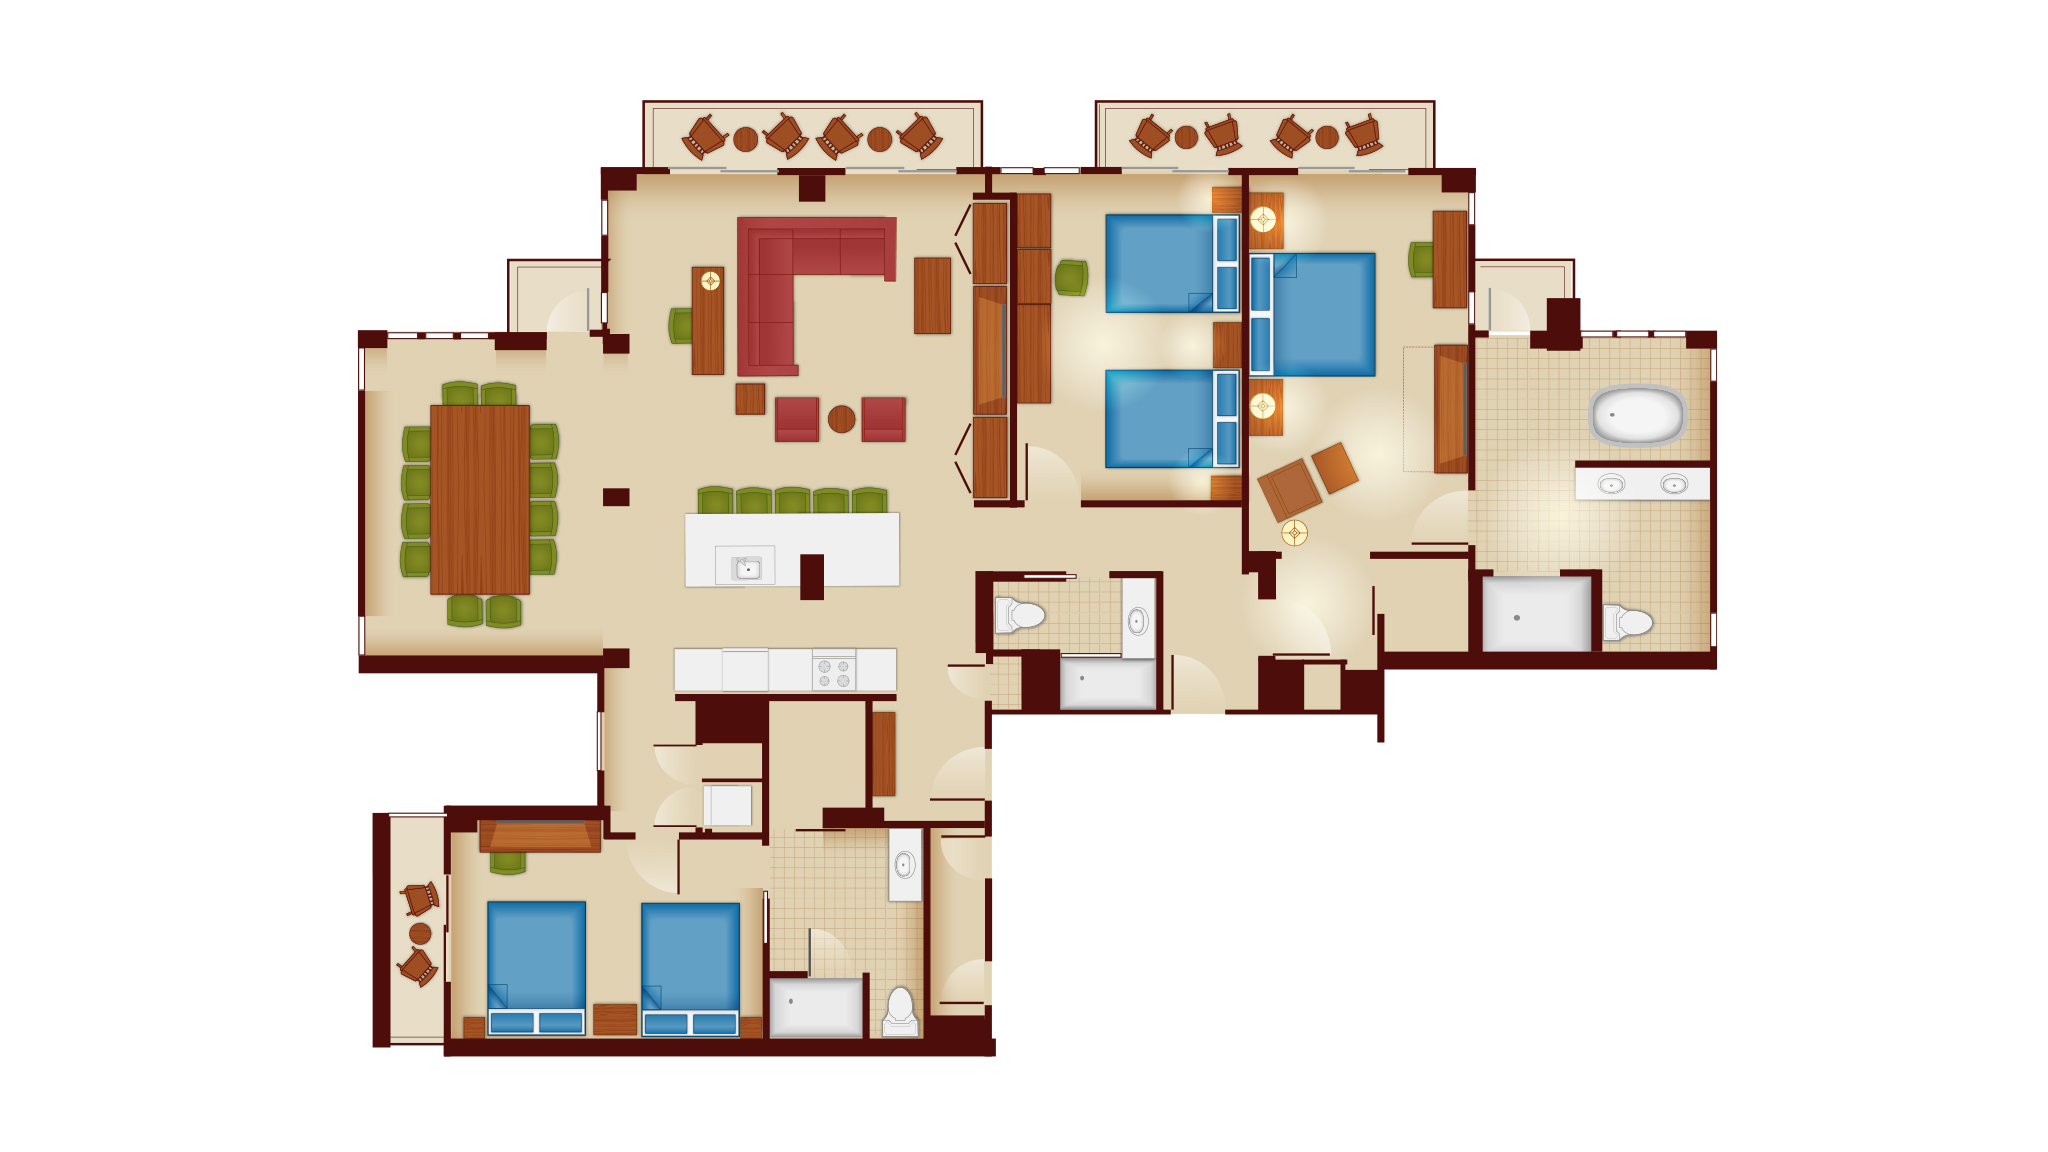 100 boardwalk villas one bedroom floor plan 1 2 3 bedroom villa floor plans